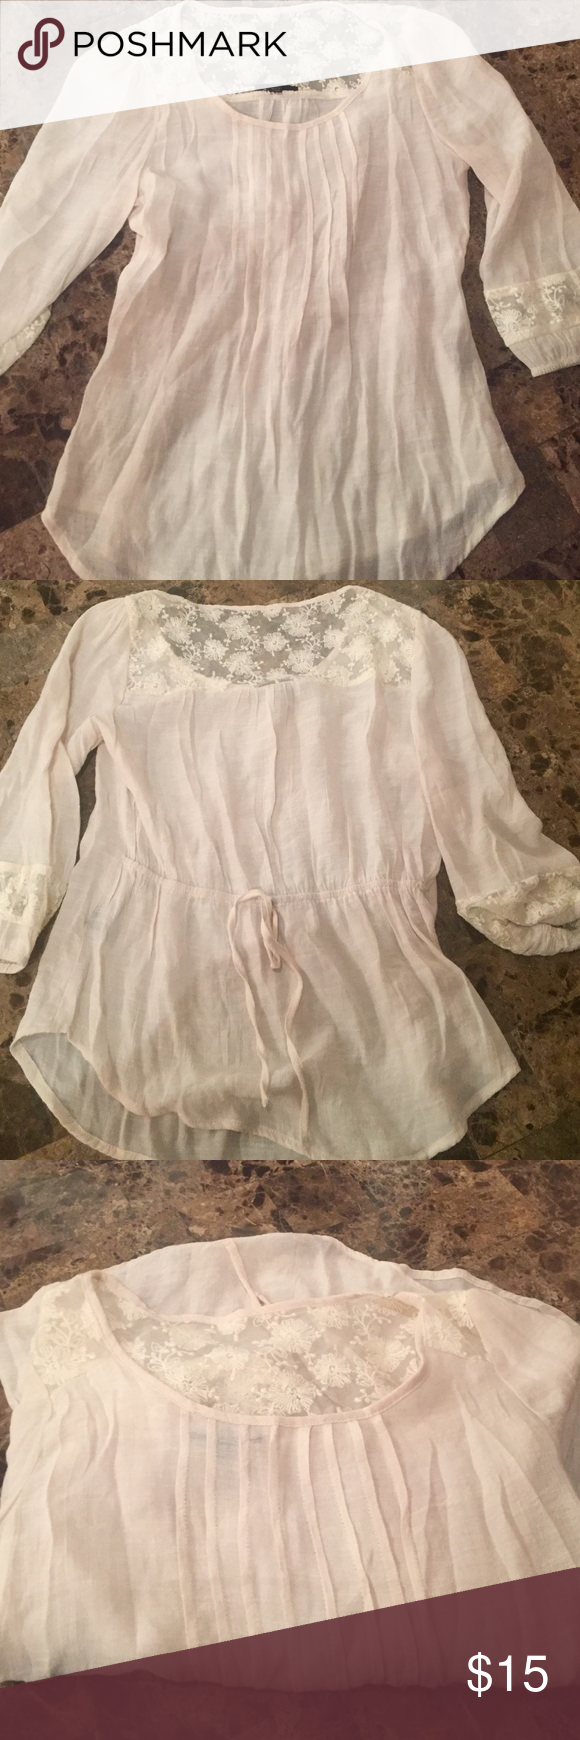 Anthropologie top-so pretty Great top! Never worn brand E and M Anthropologie Tops Tunics